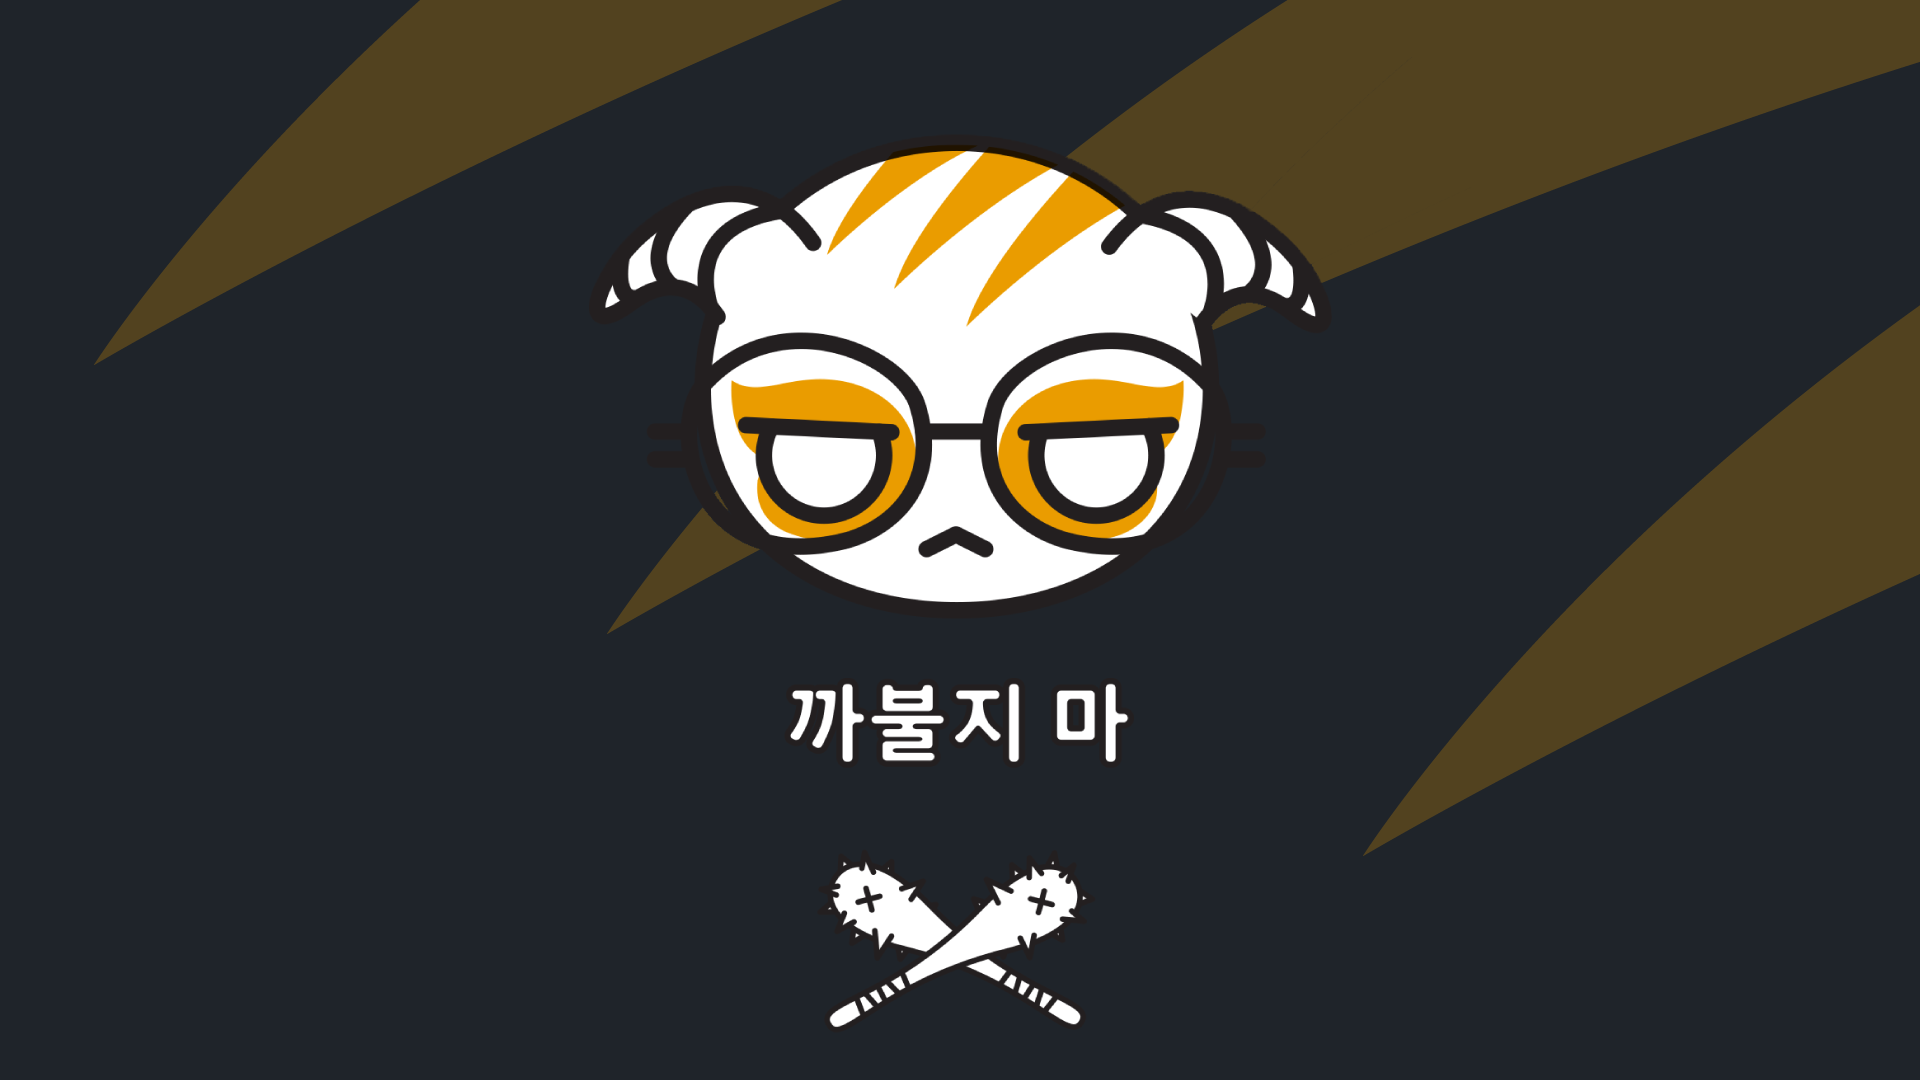 1920x1080 The Dokkaebi Wallpaper I Wanted Was For The Phone So I